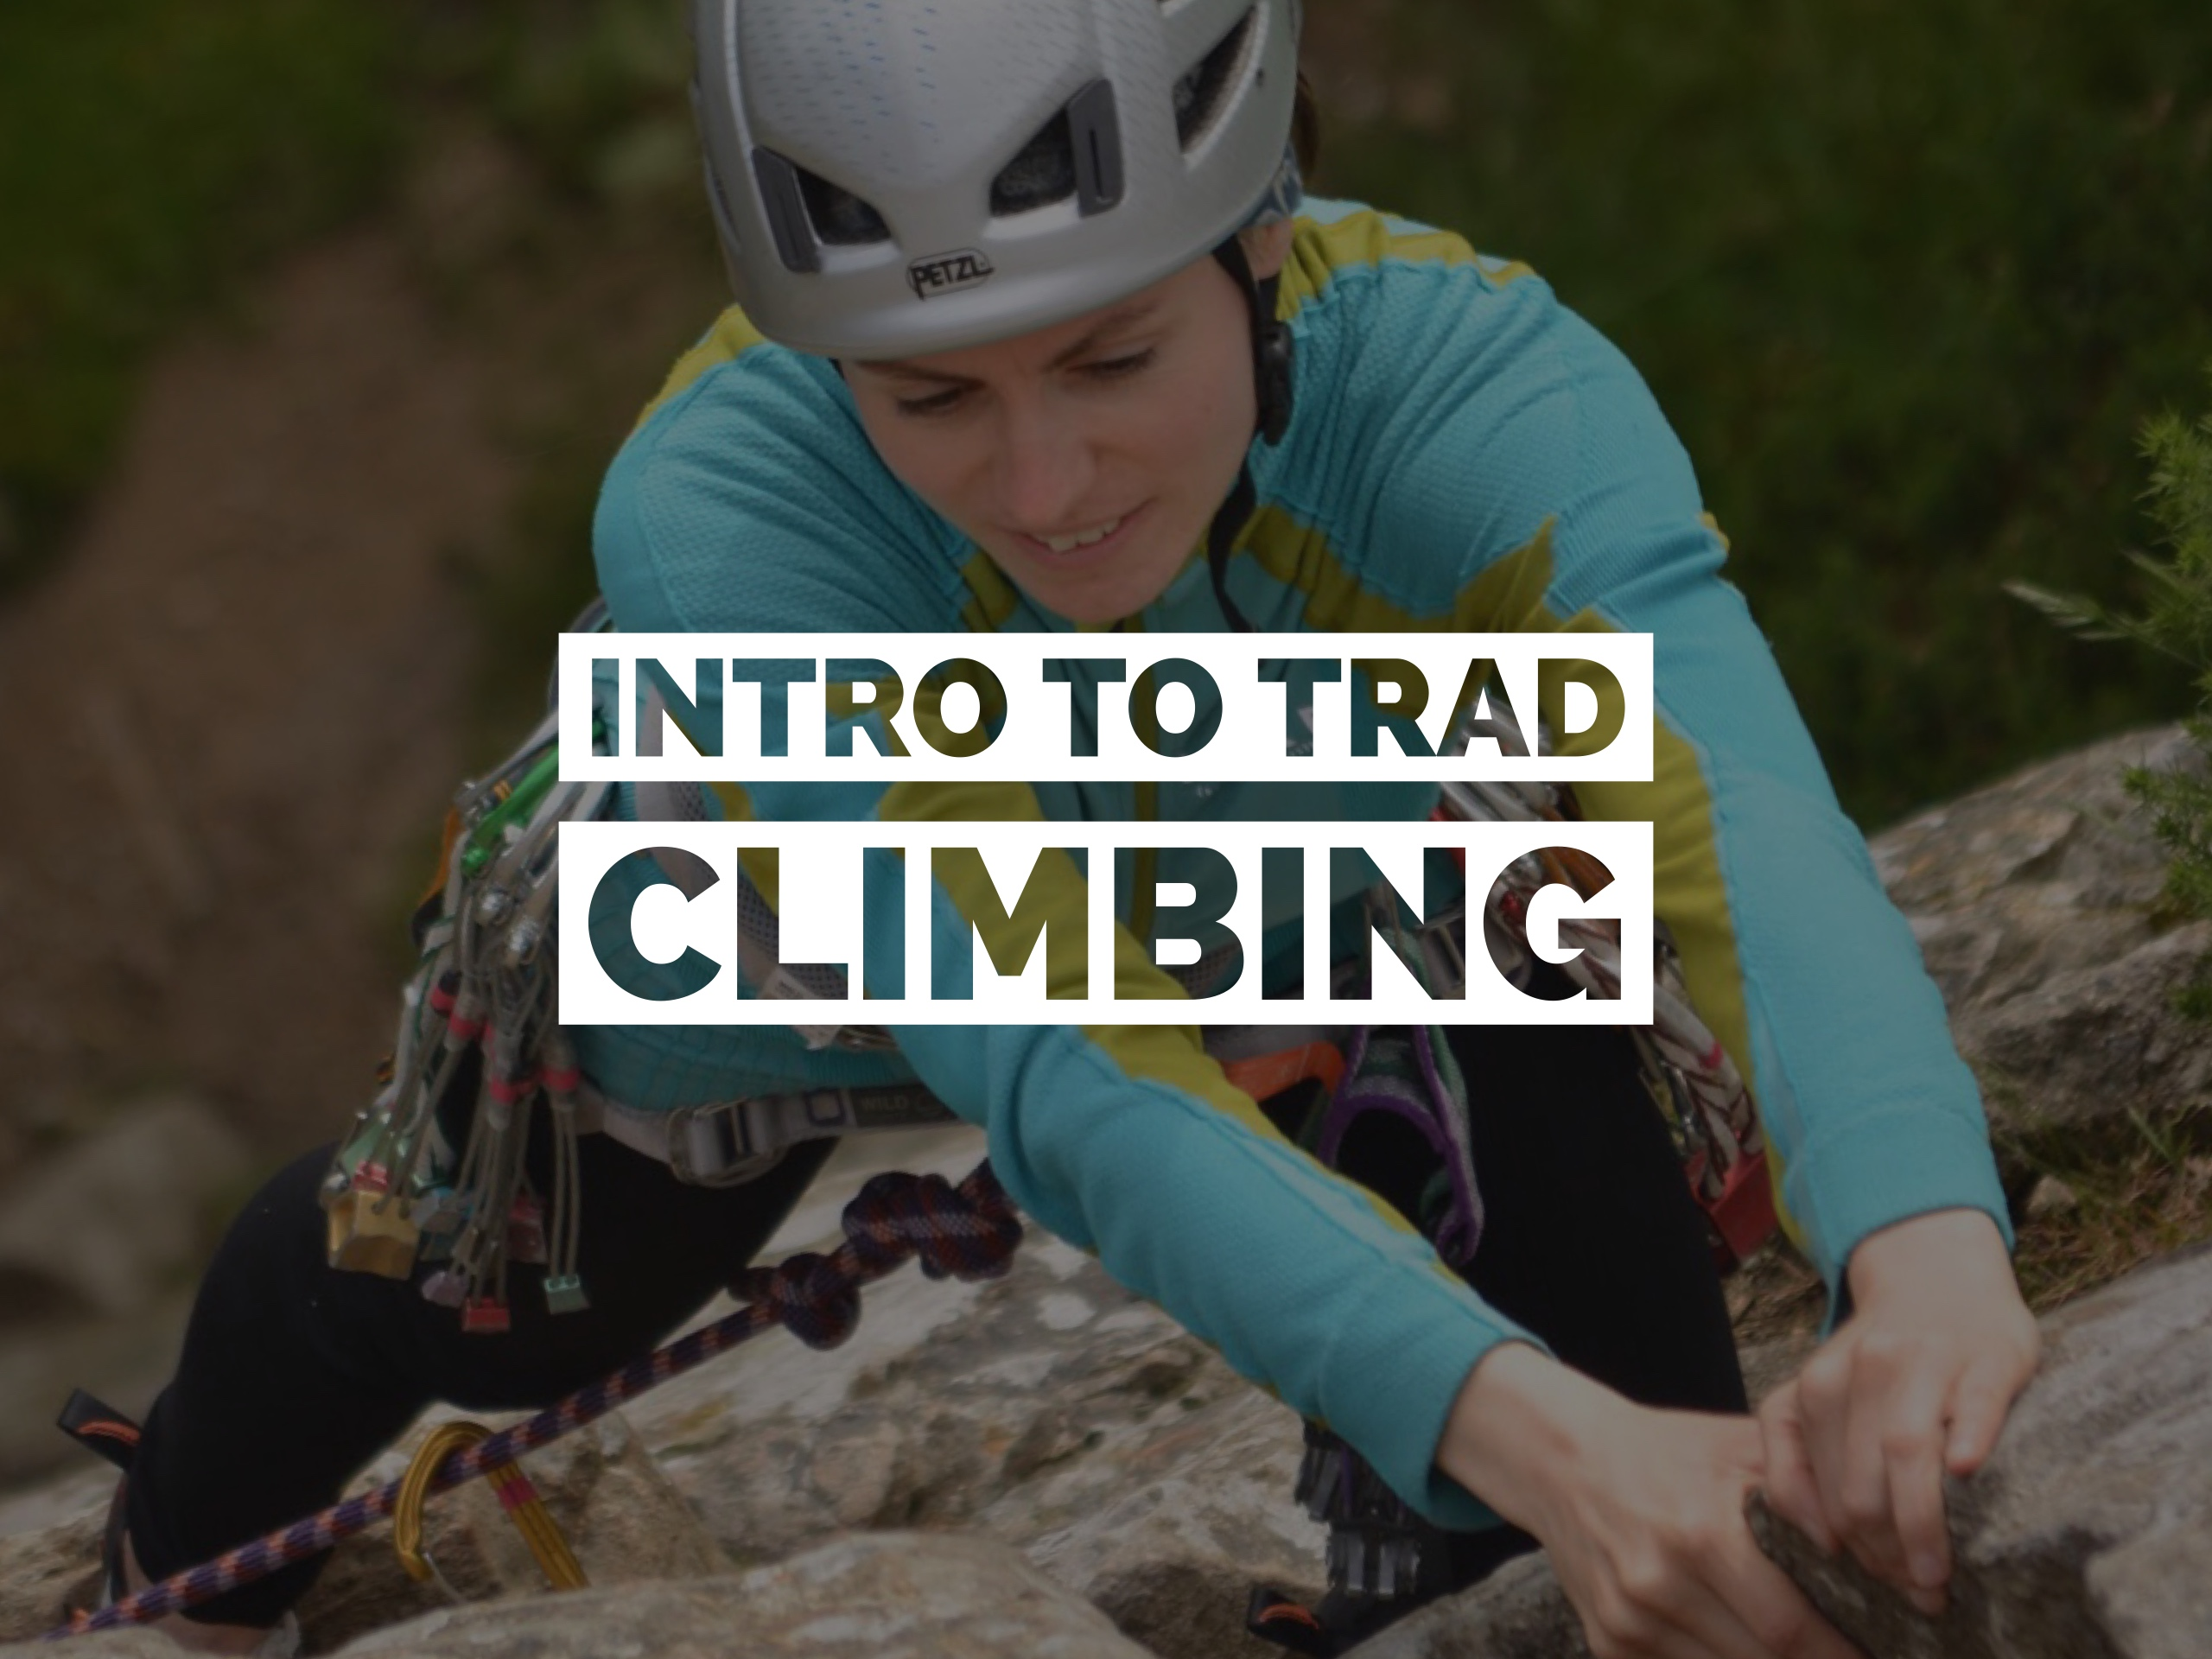 Introduction to Trad Climbing